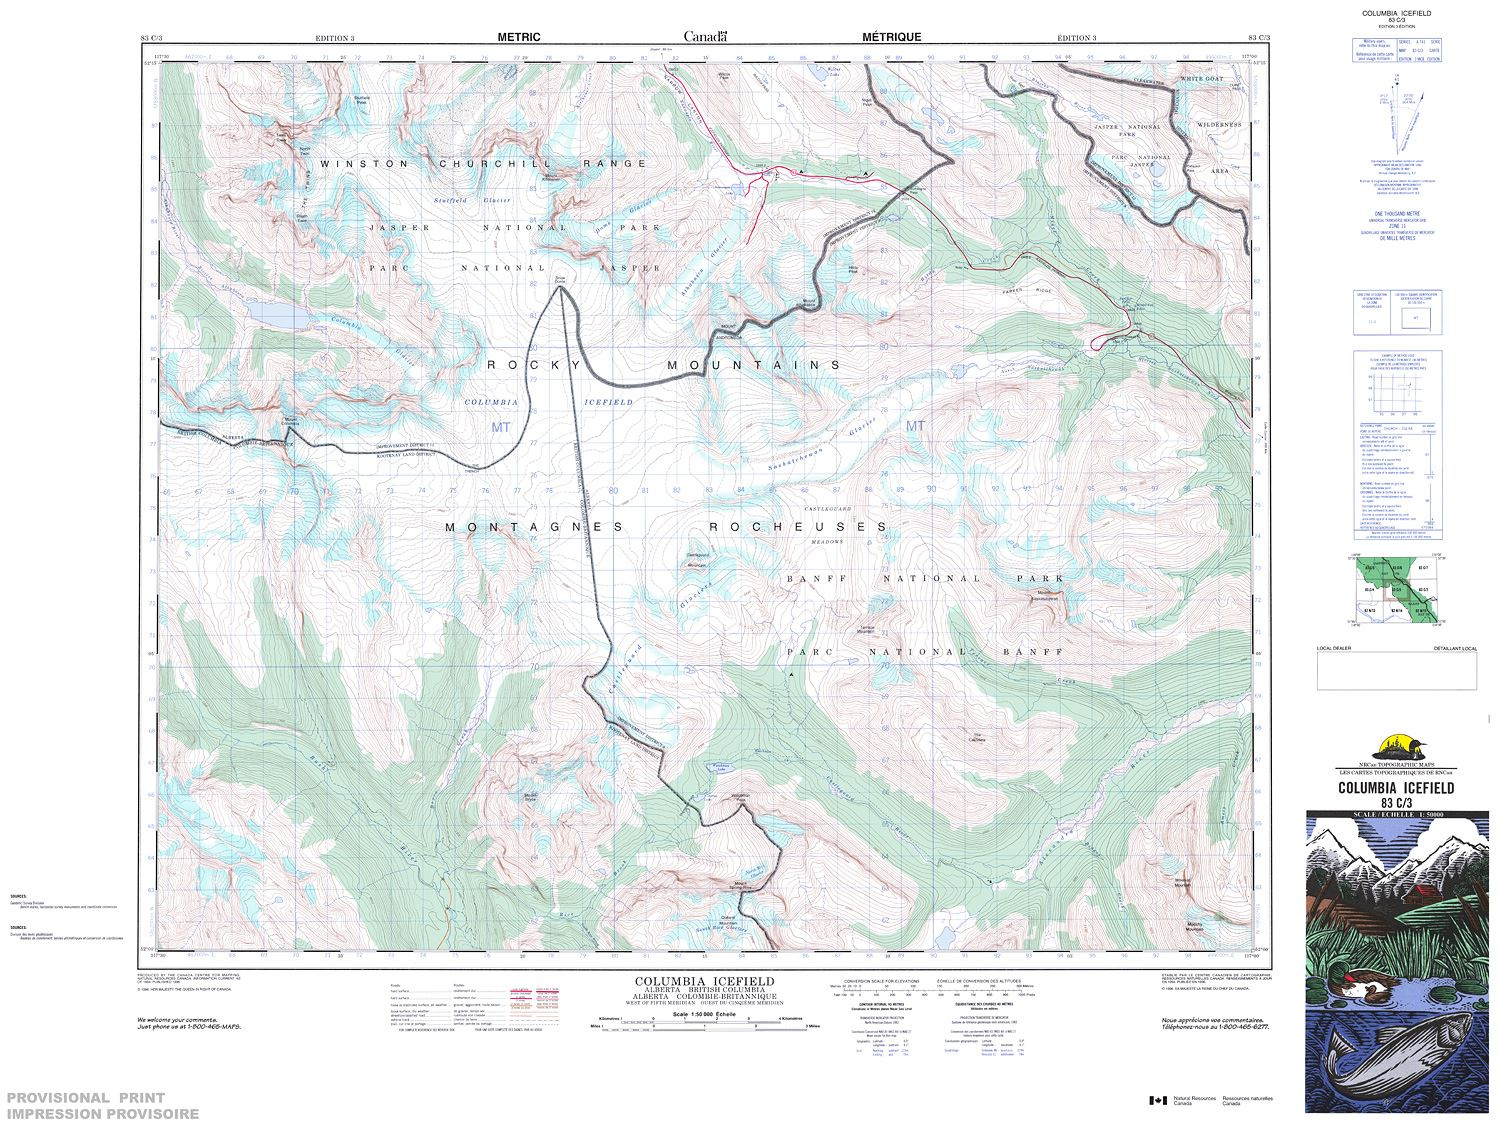 Columbia Canada Map.083c03 Columbia Icefield Topographic Map